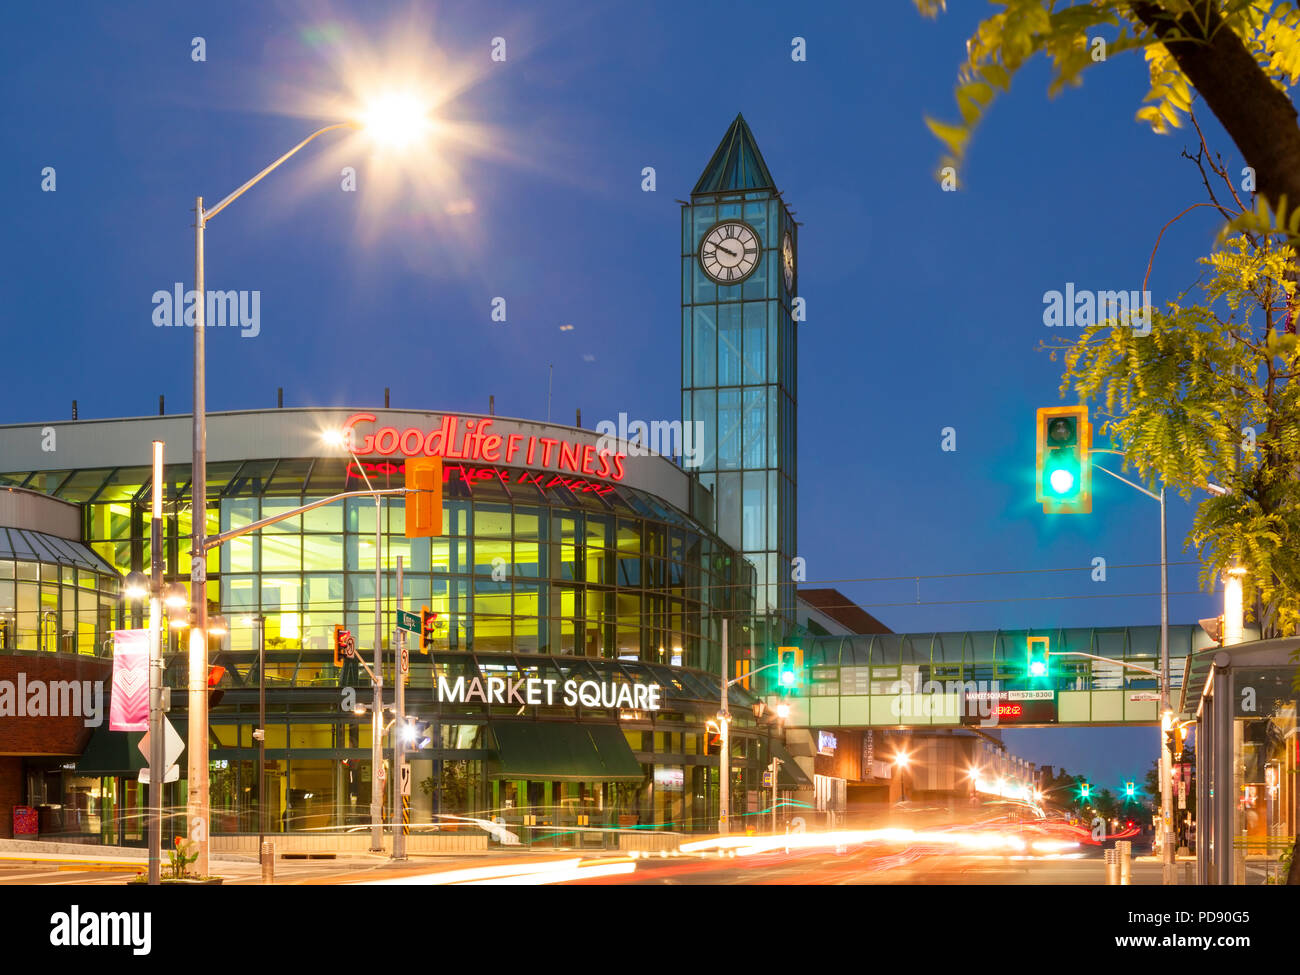 Market Square Kitchener Stock Photos & Market Square Kitchener Stock ...